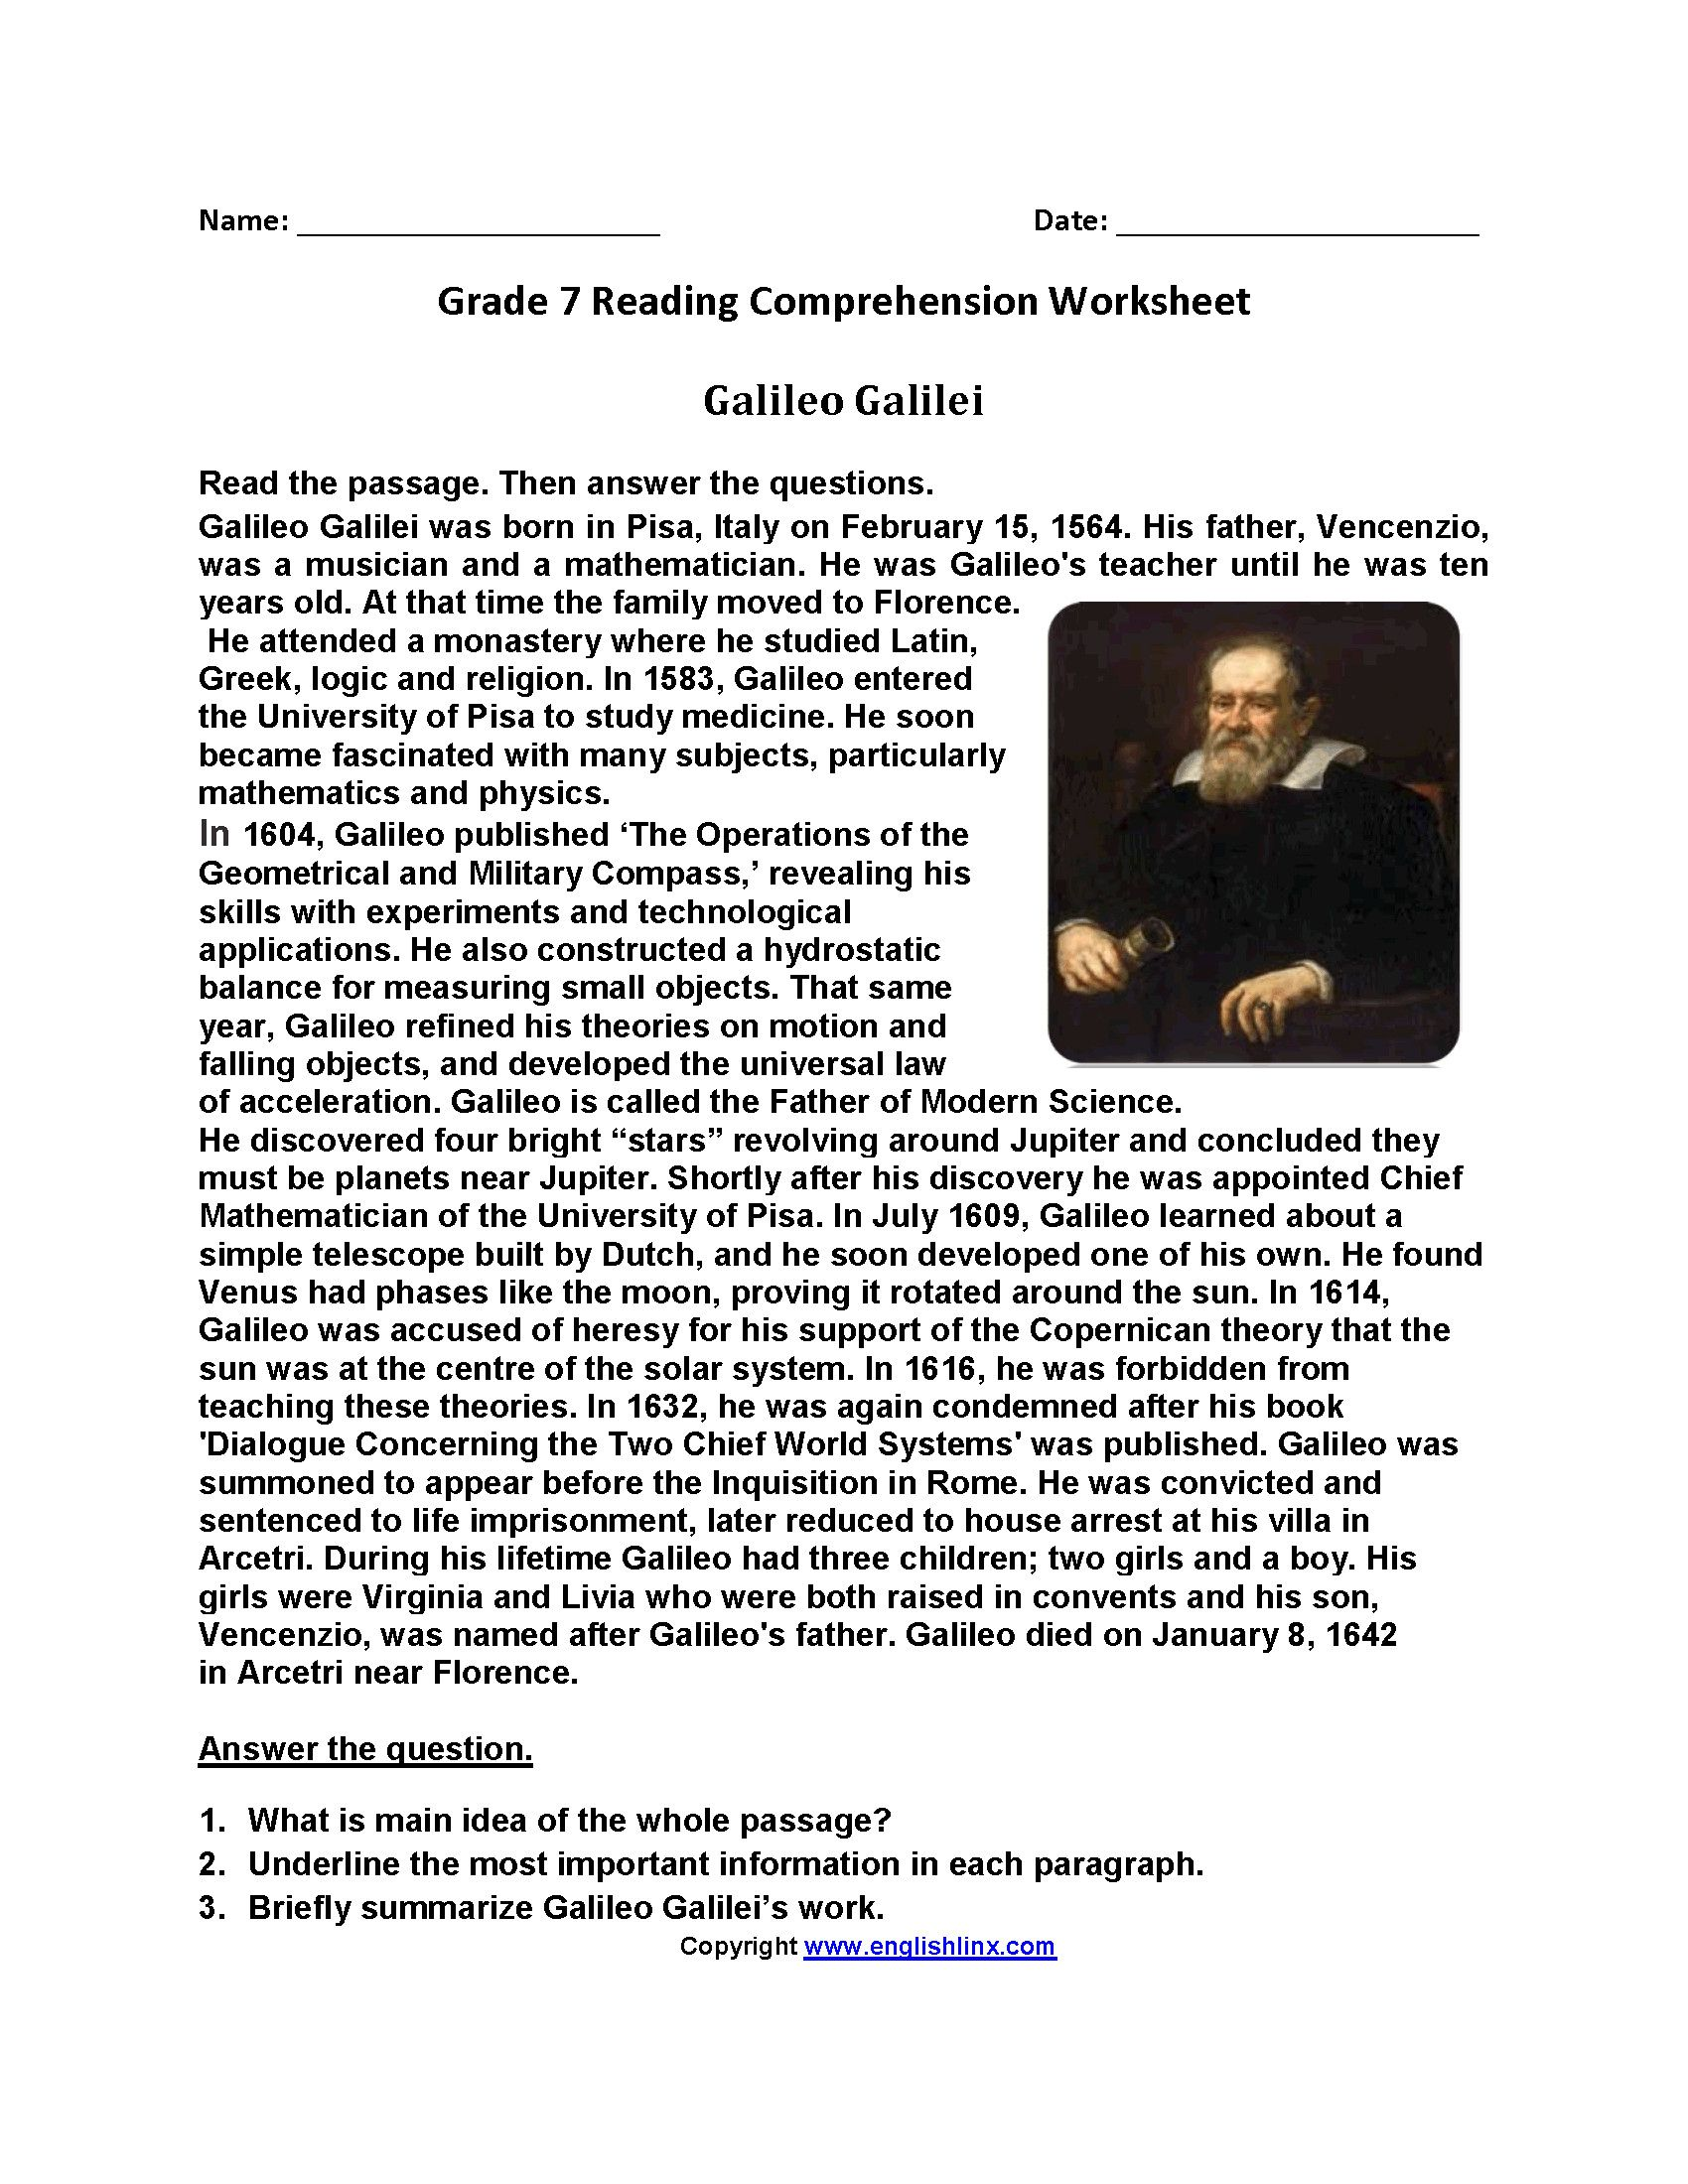 7th Grade Reading Homework Worksheets   Printable Worksheets and Activities  for Teachers [ 2200 x 1700 Pixel ]